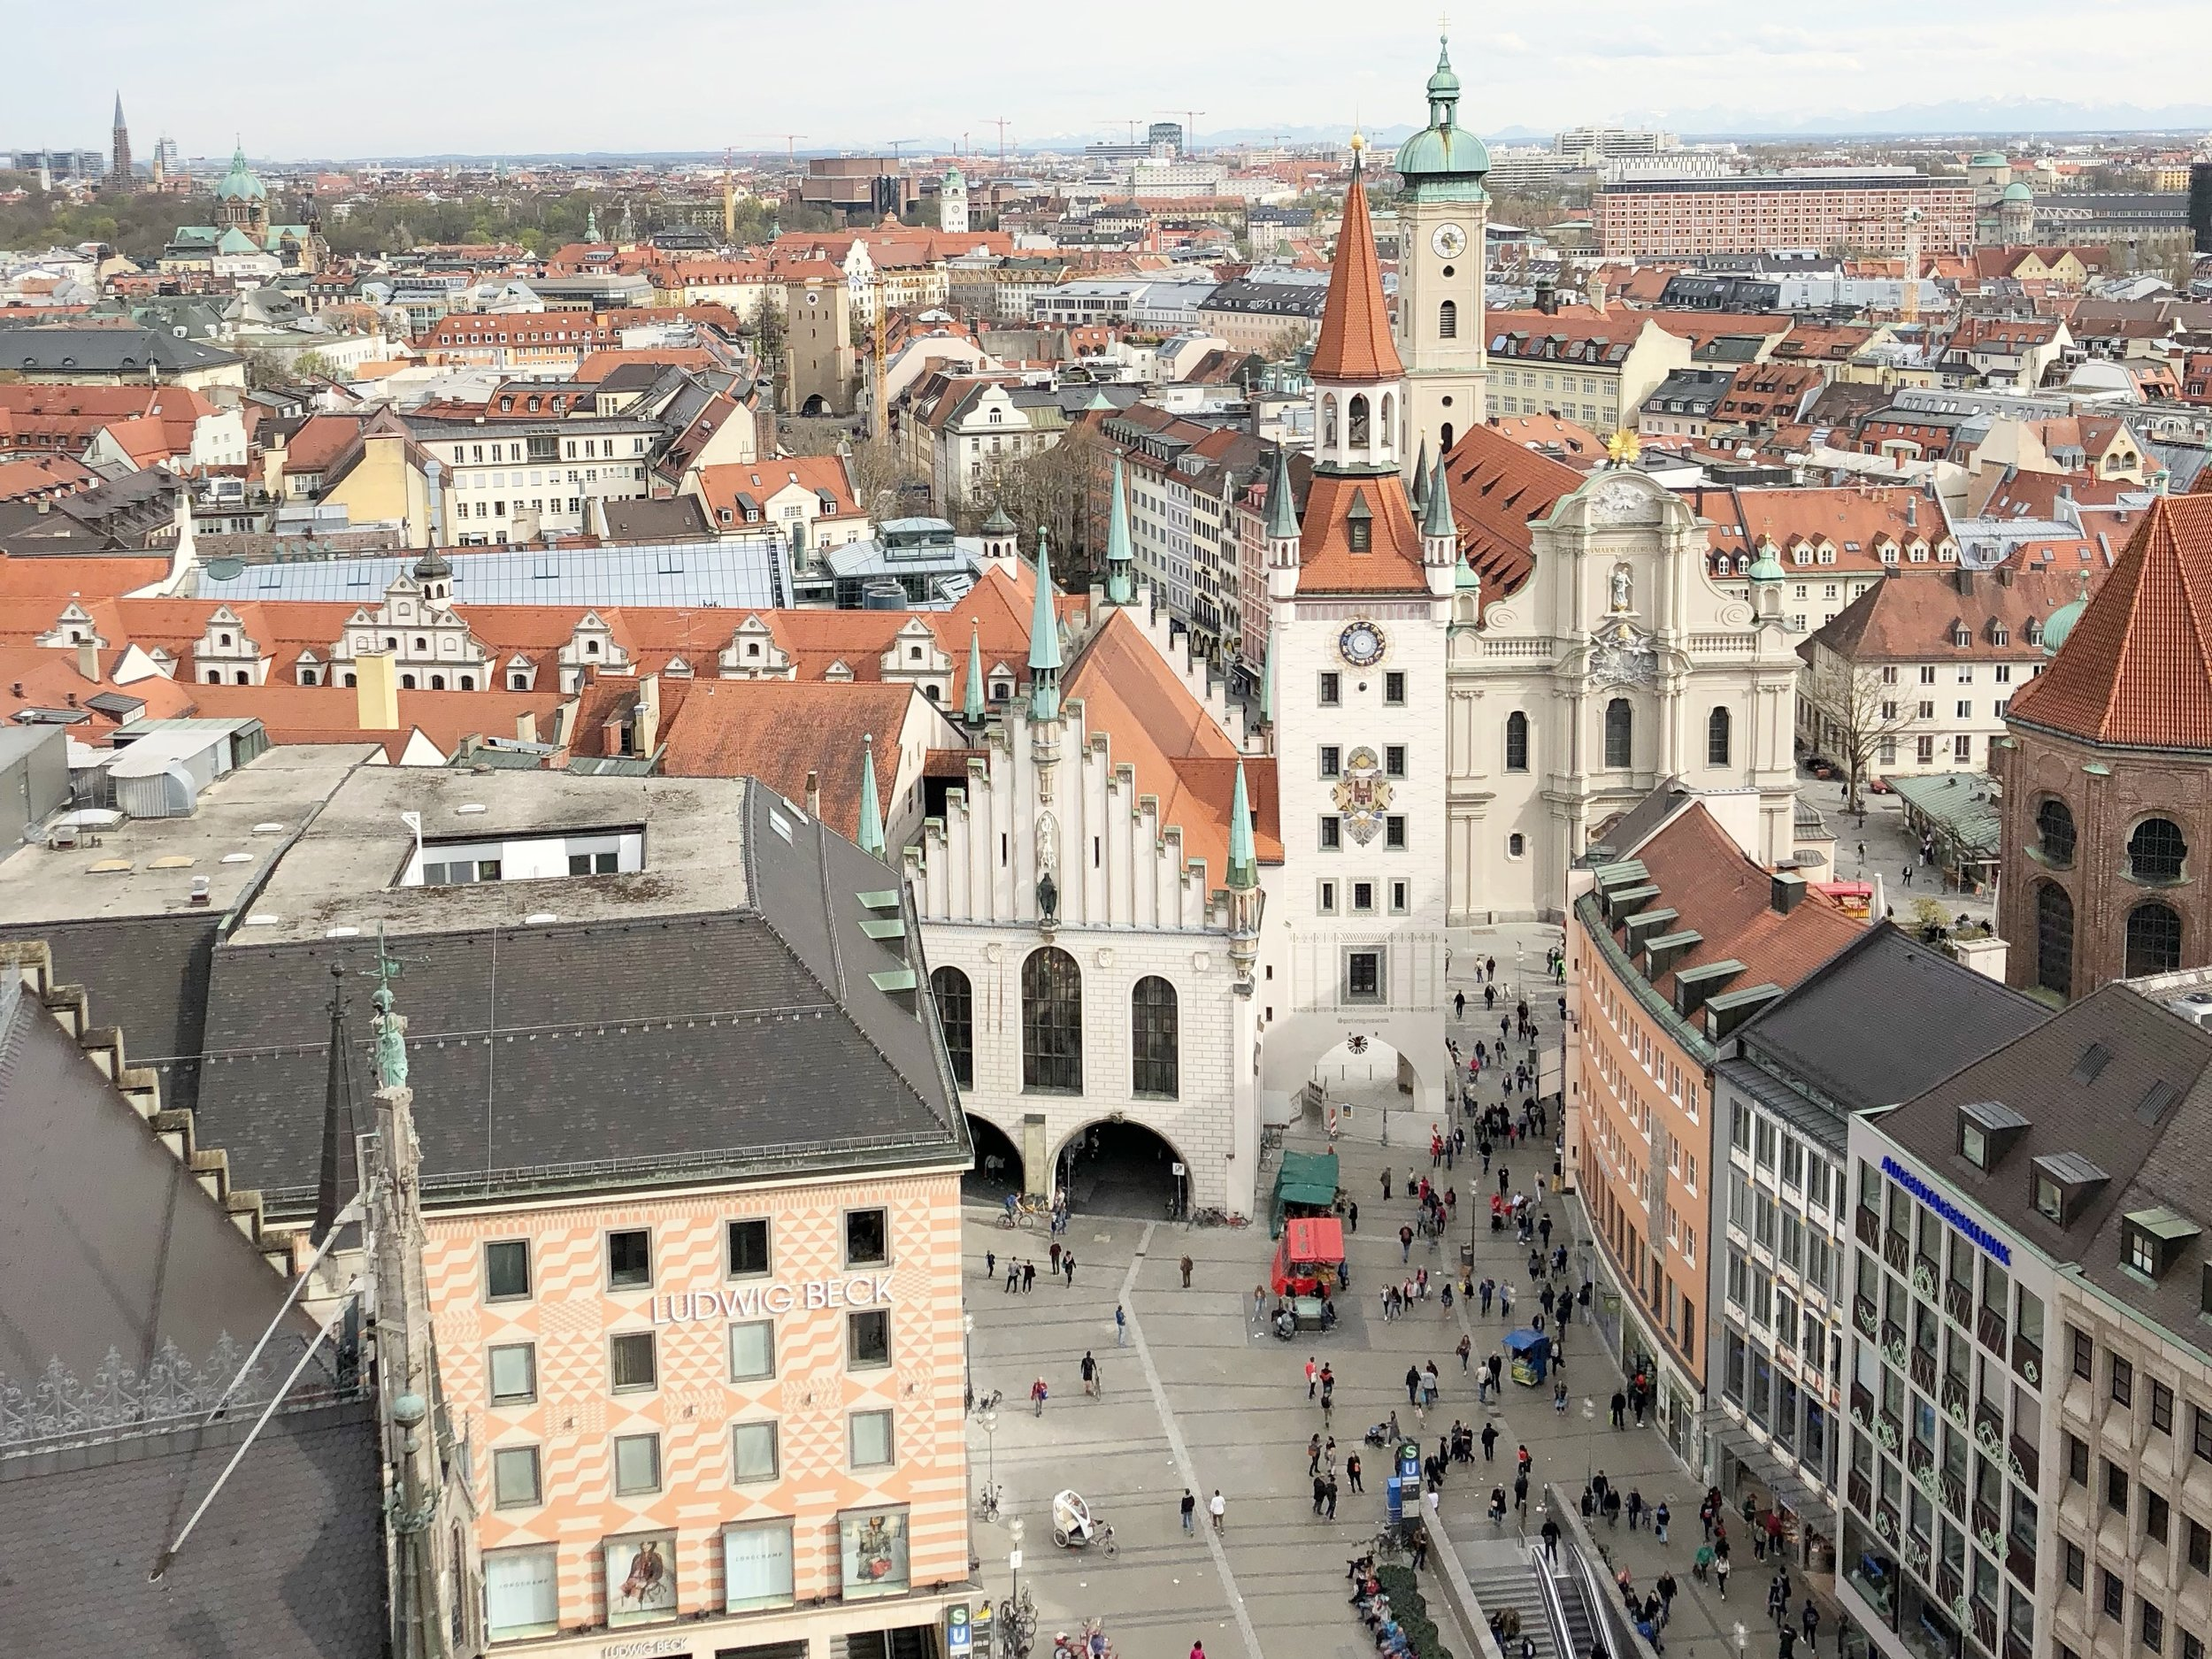 Things-To-See-In-Germany-Mariensplatz-Munich.JPG